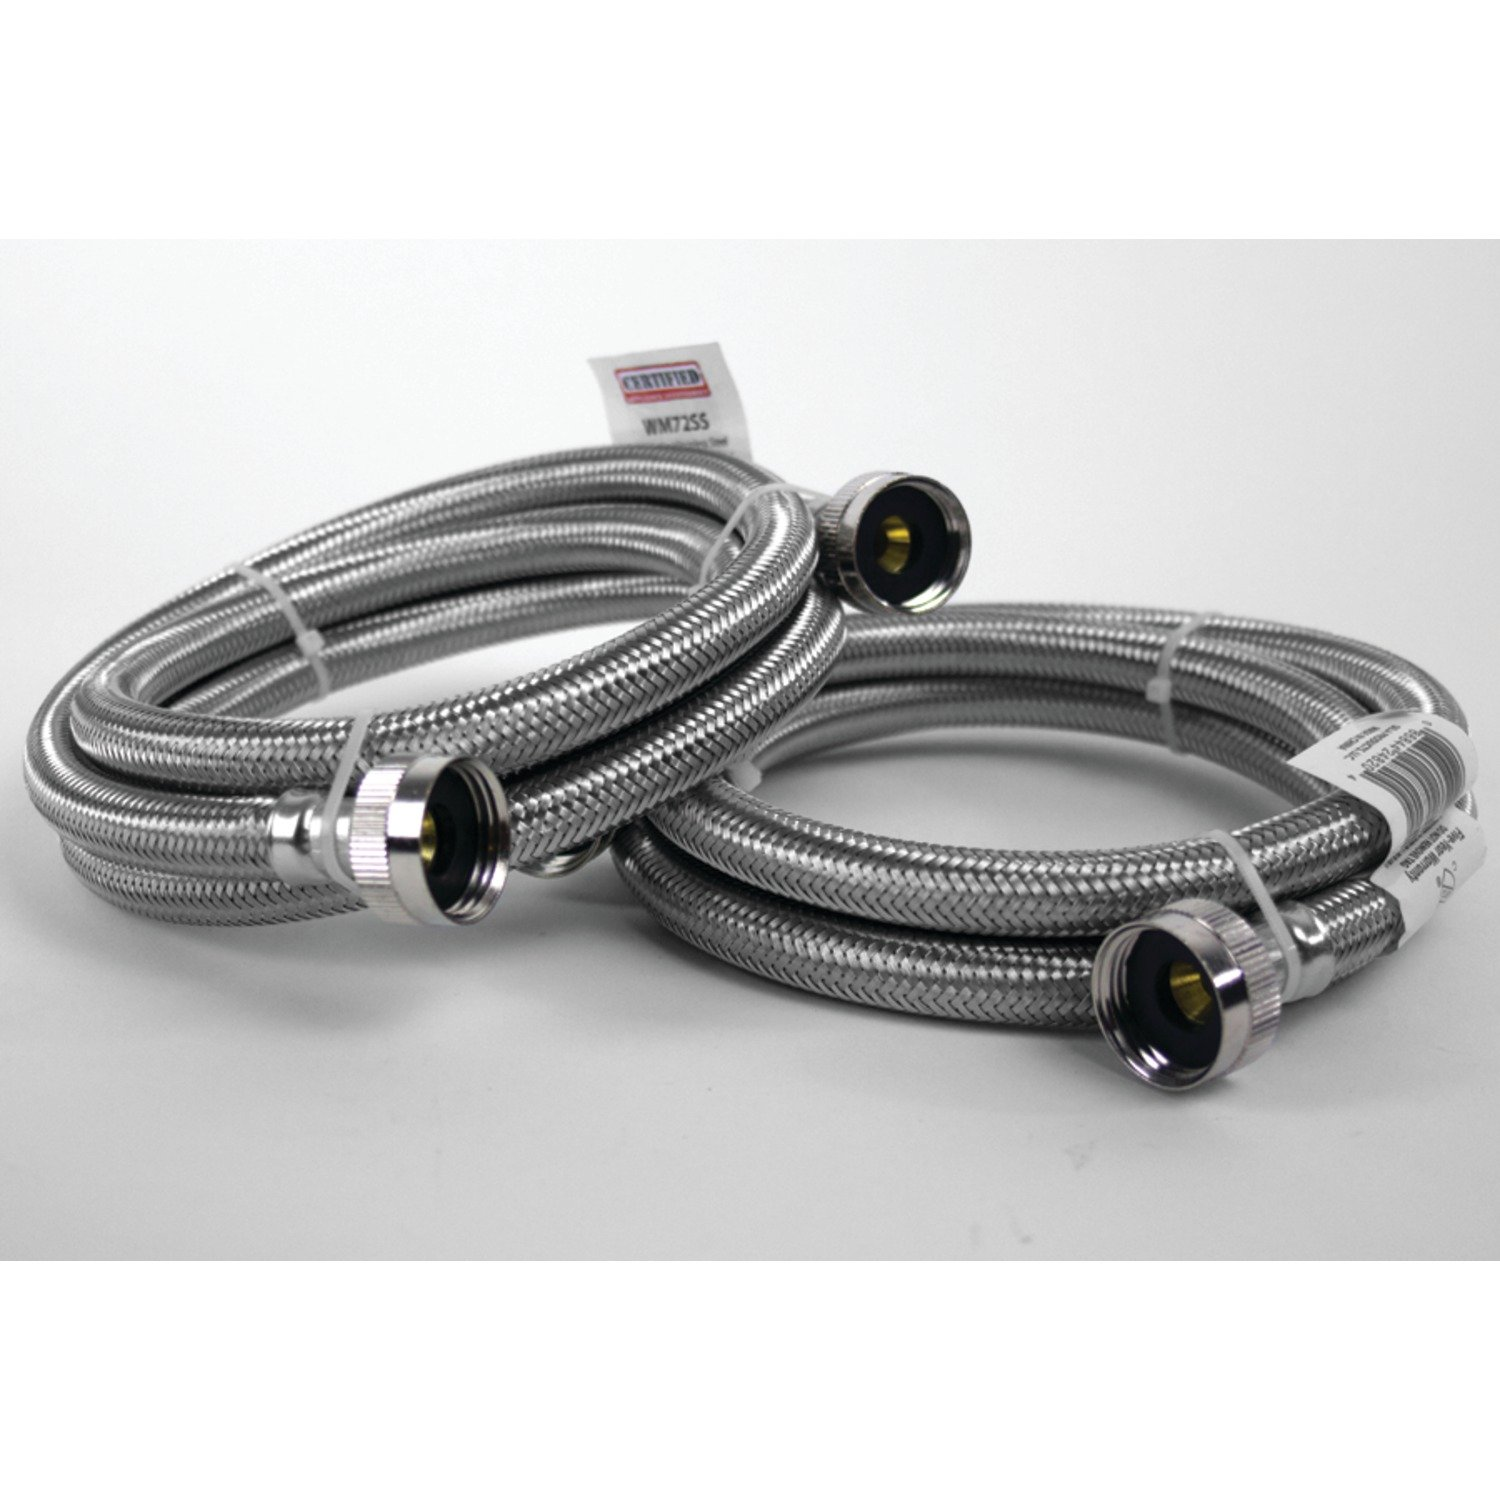 Certified Appliance Accessories Braided Stainless Steel Washing Machine Hoses, 6ft by Certified Appliance Accessories (Image #4)